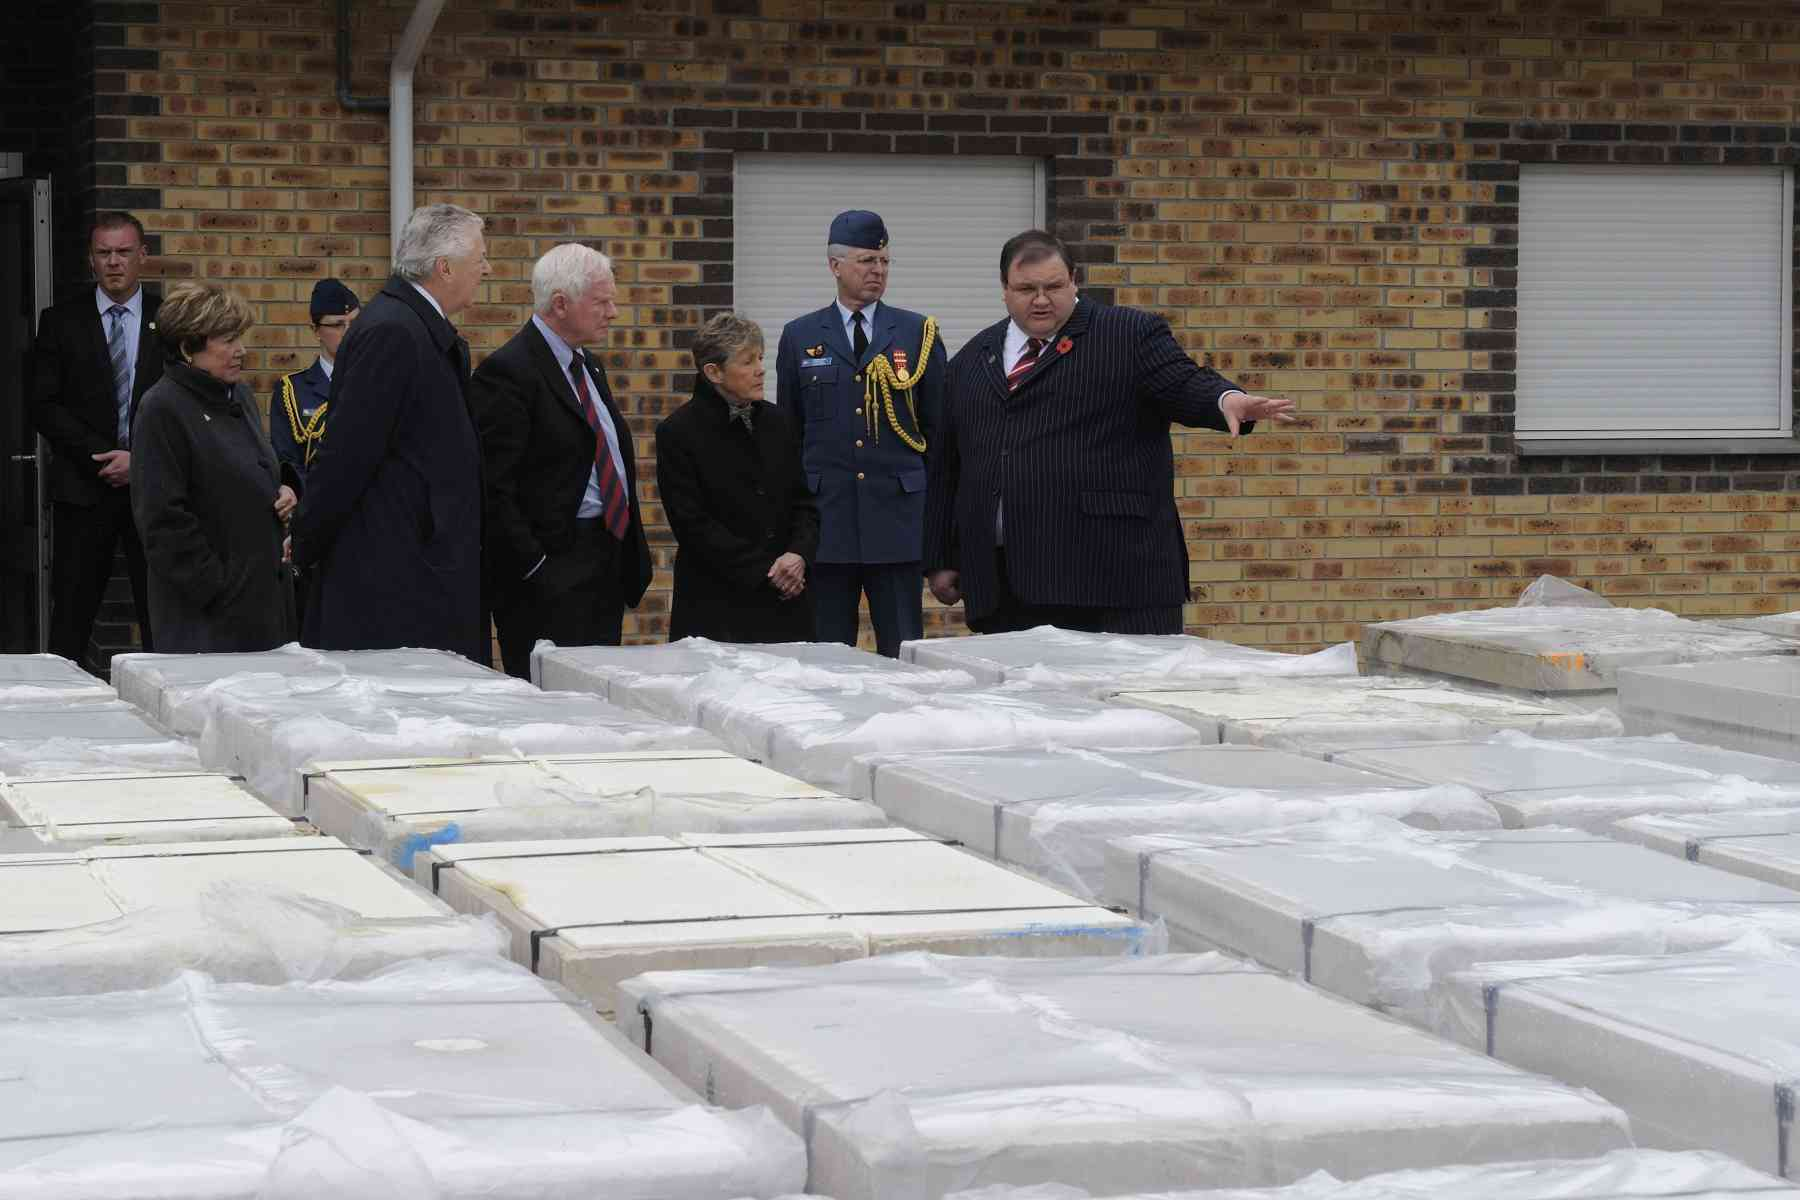 In the afternoon, Their Excellencies visited the Commonwealth War Graves Commission, the organization that maintains gravesites in France. Mr. Pierre Ansart gave Their Excellencies a guided tour of the premises.